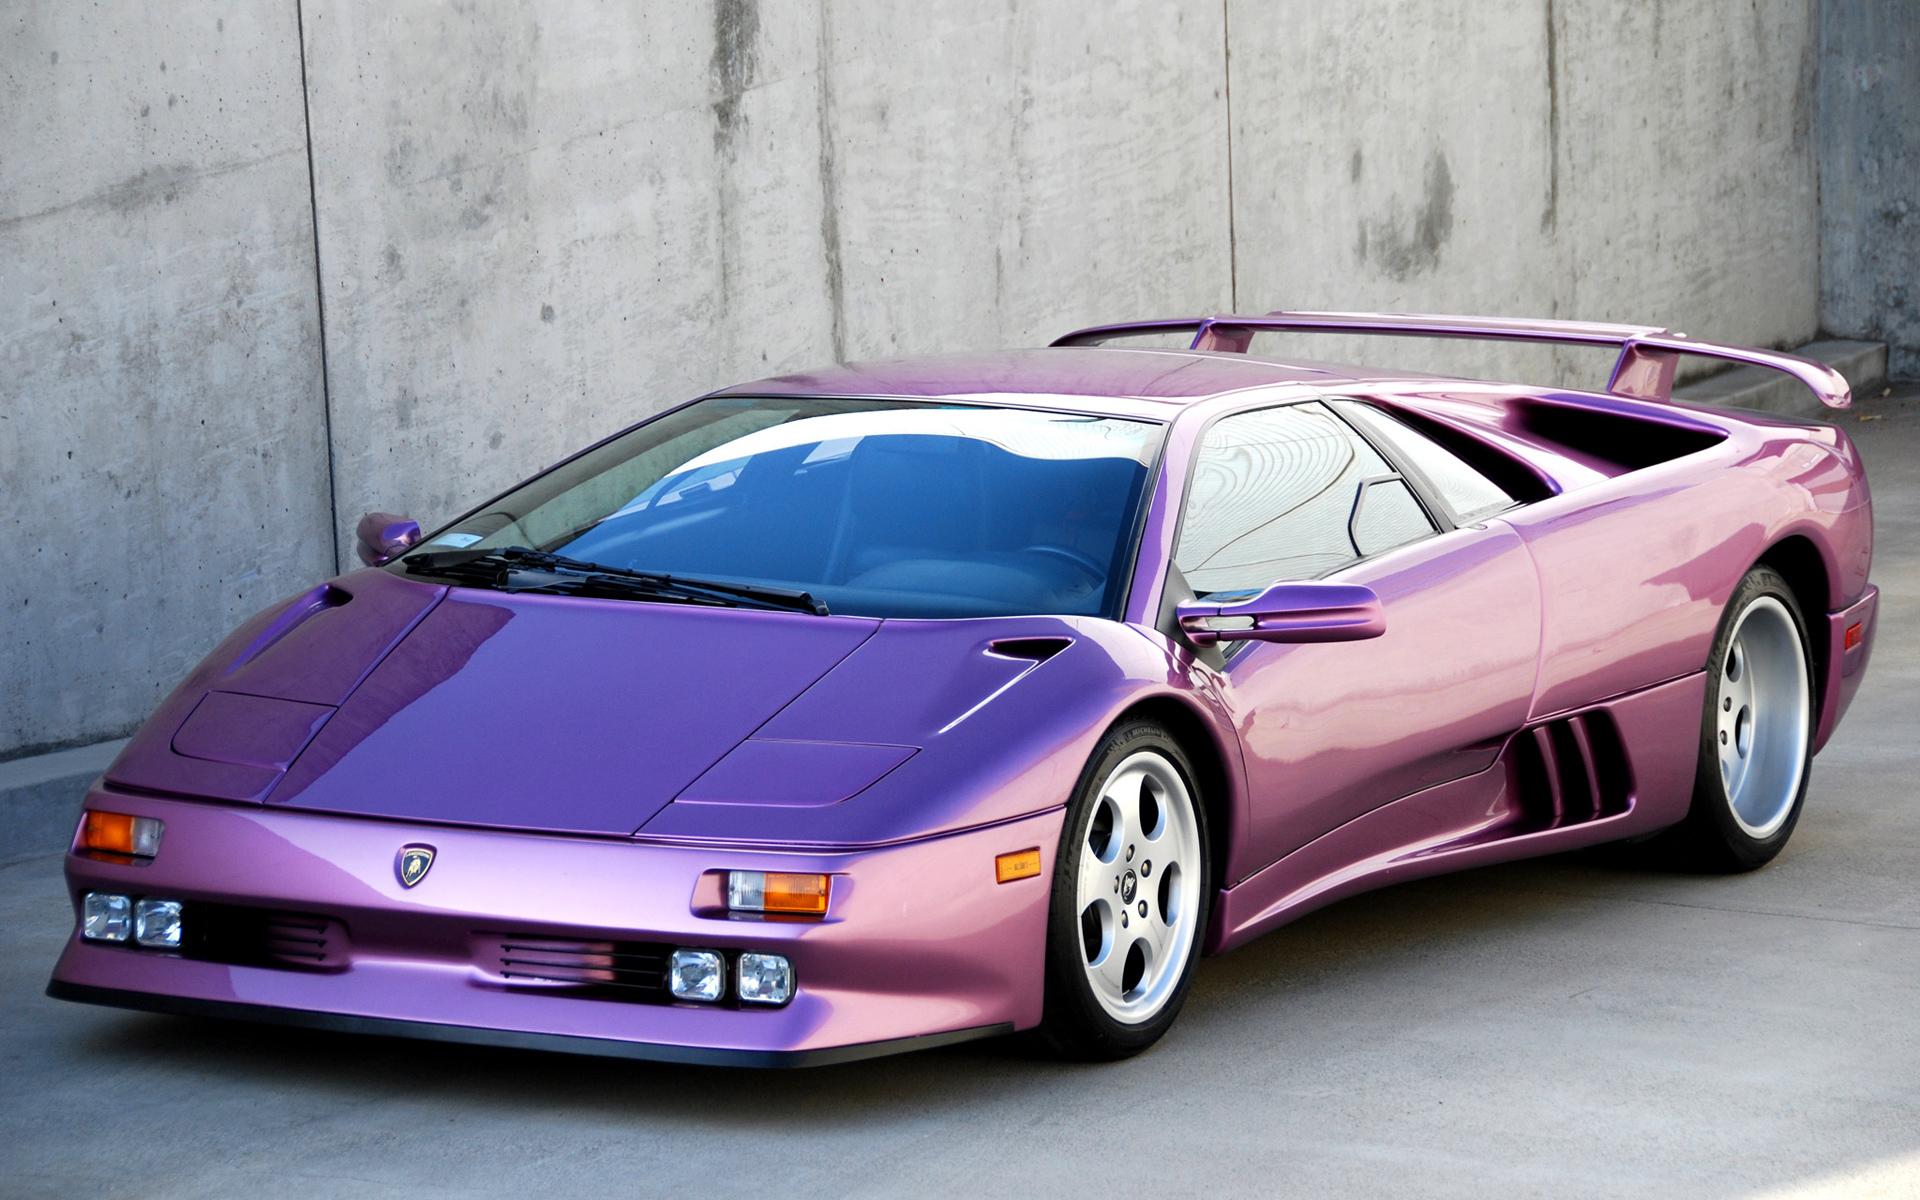 Lamborghini Wallpaper Mobile: Purple Lamborghini Wallpapers Images Photos Pictures